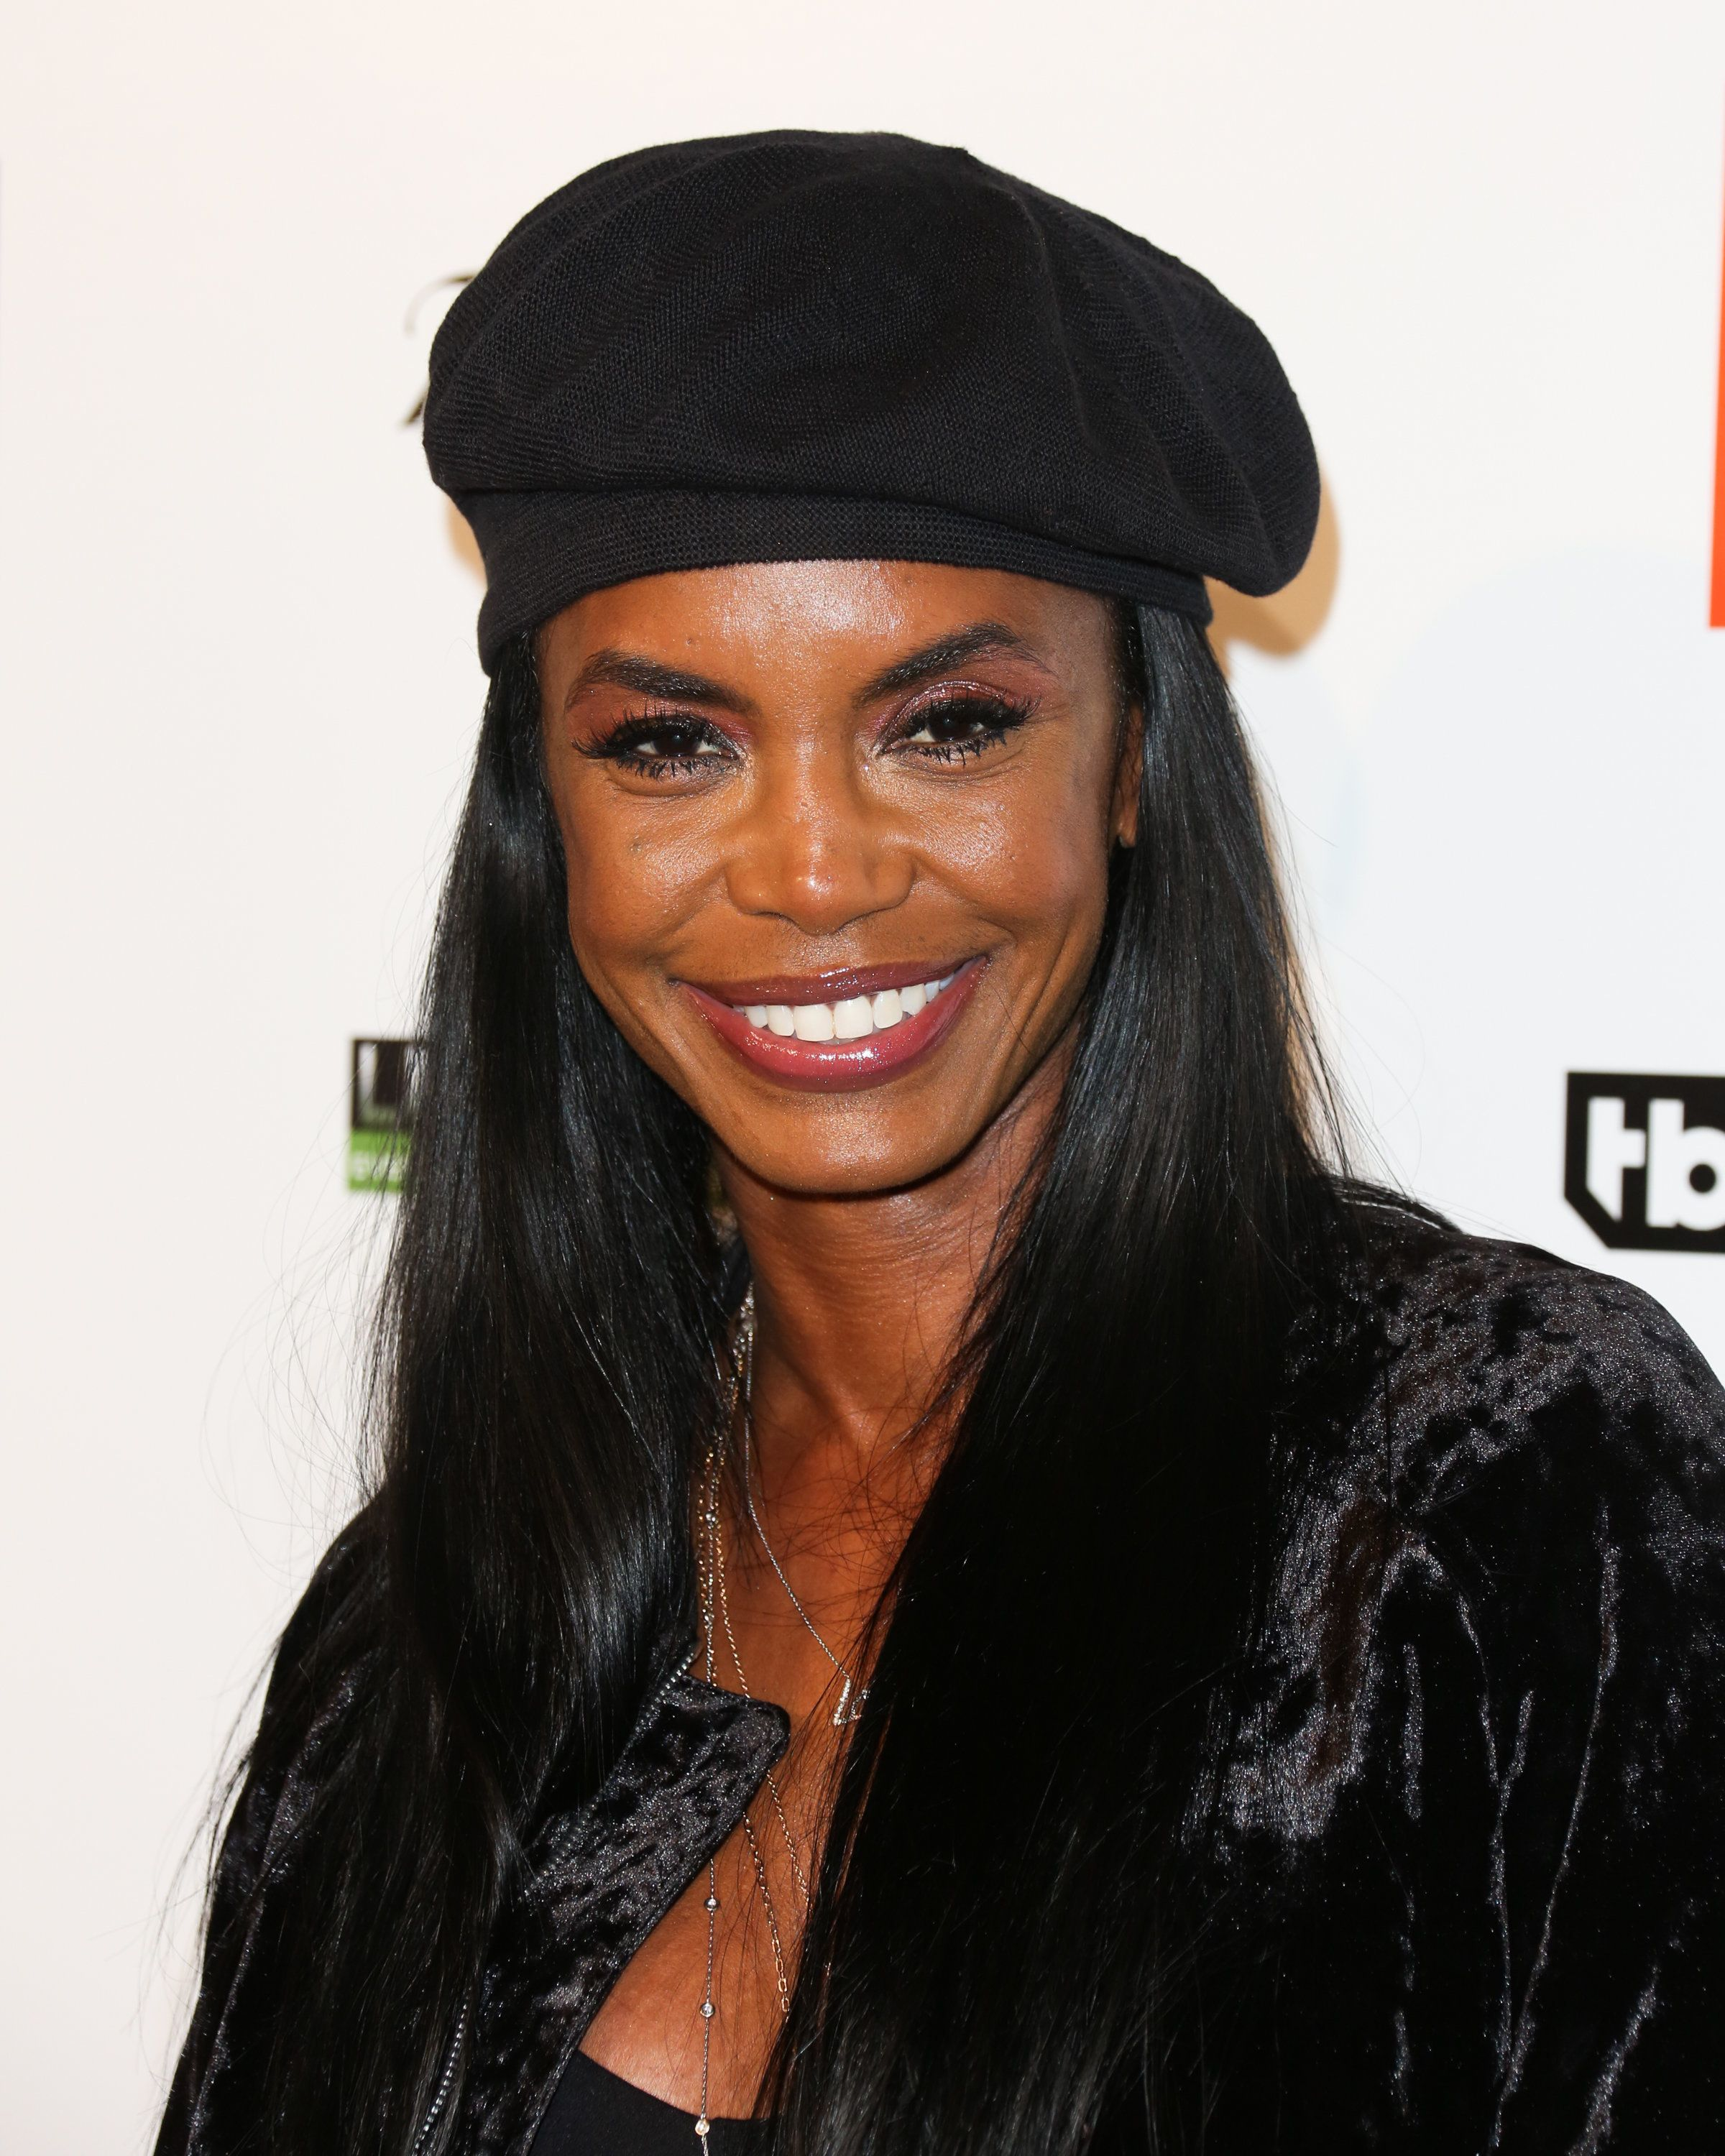 HOLLYWOOD, CA - FEBRUARY 16:  Actress / Model Kim Porter attends Kenny 'The Jet' Smith's annual All-Star bash presented By JBL at Paramount Studios on February 16, 2018 in Hollywood, California.  (Photo by Paul Archuleta/Getty Images)